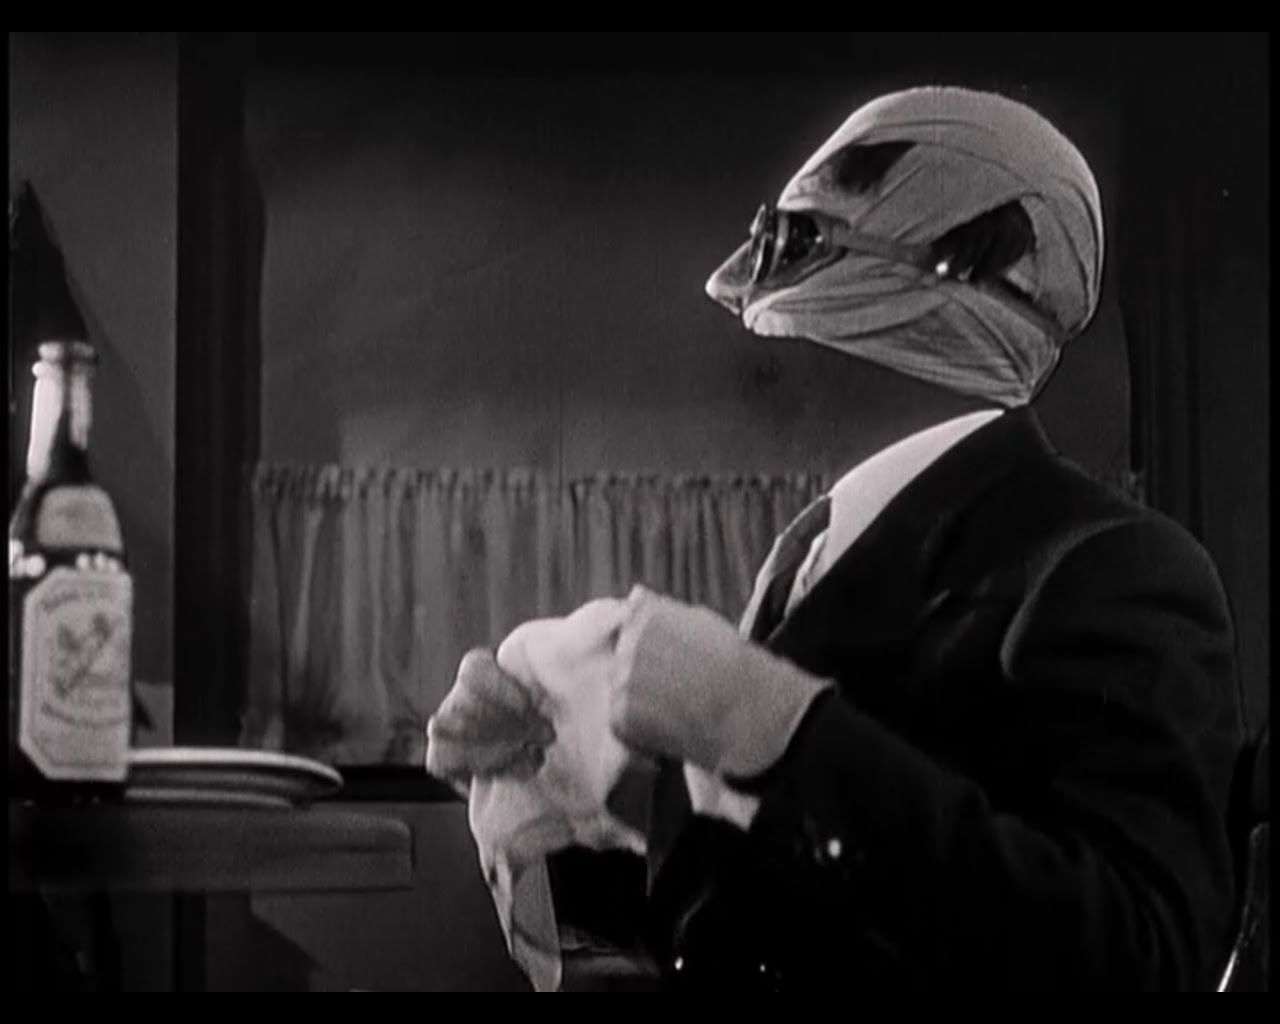 Claude Rains as Jack GriffinThe Invisible Man in The Invisible Man 1280x1024